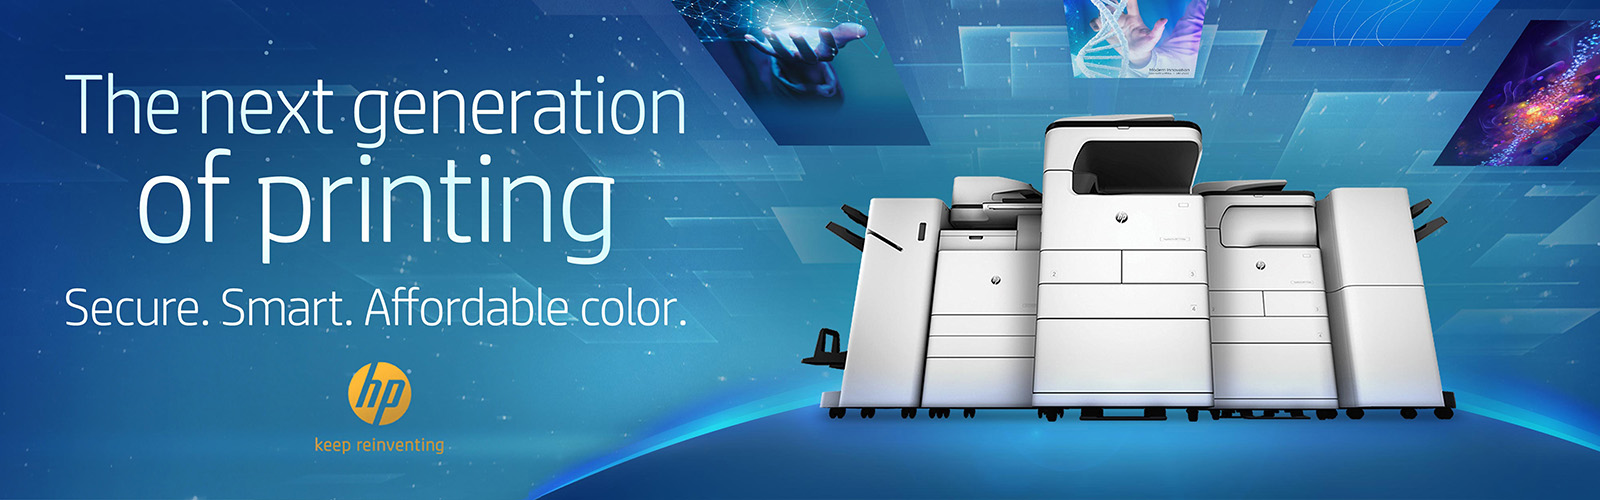 HP A3 Products Banner